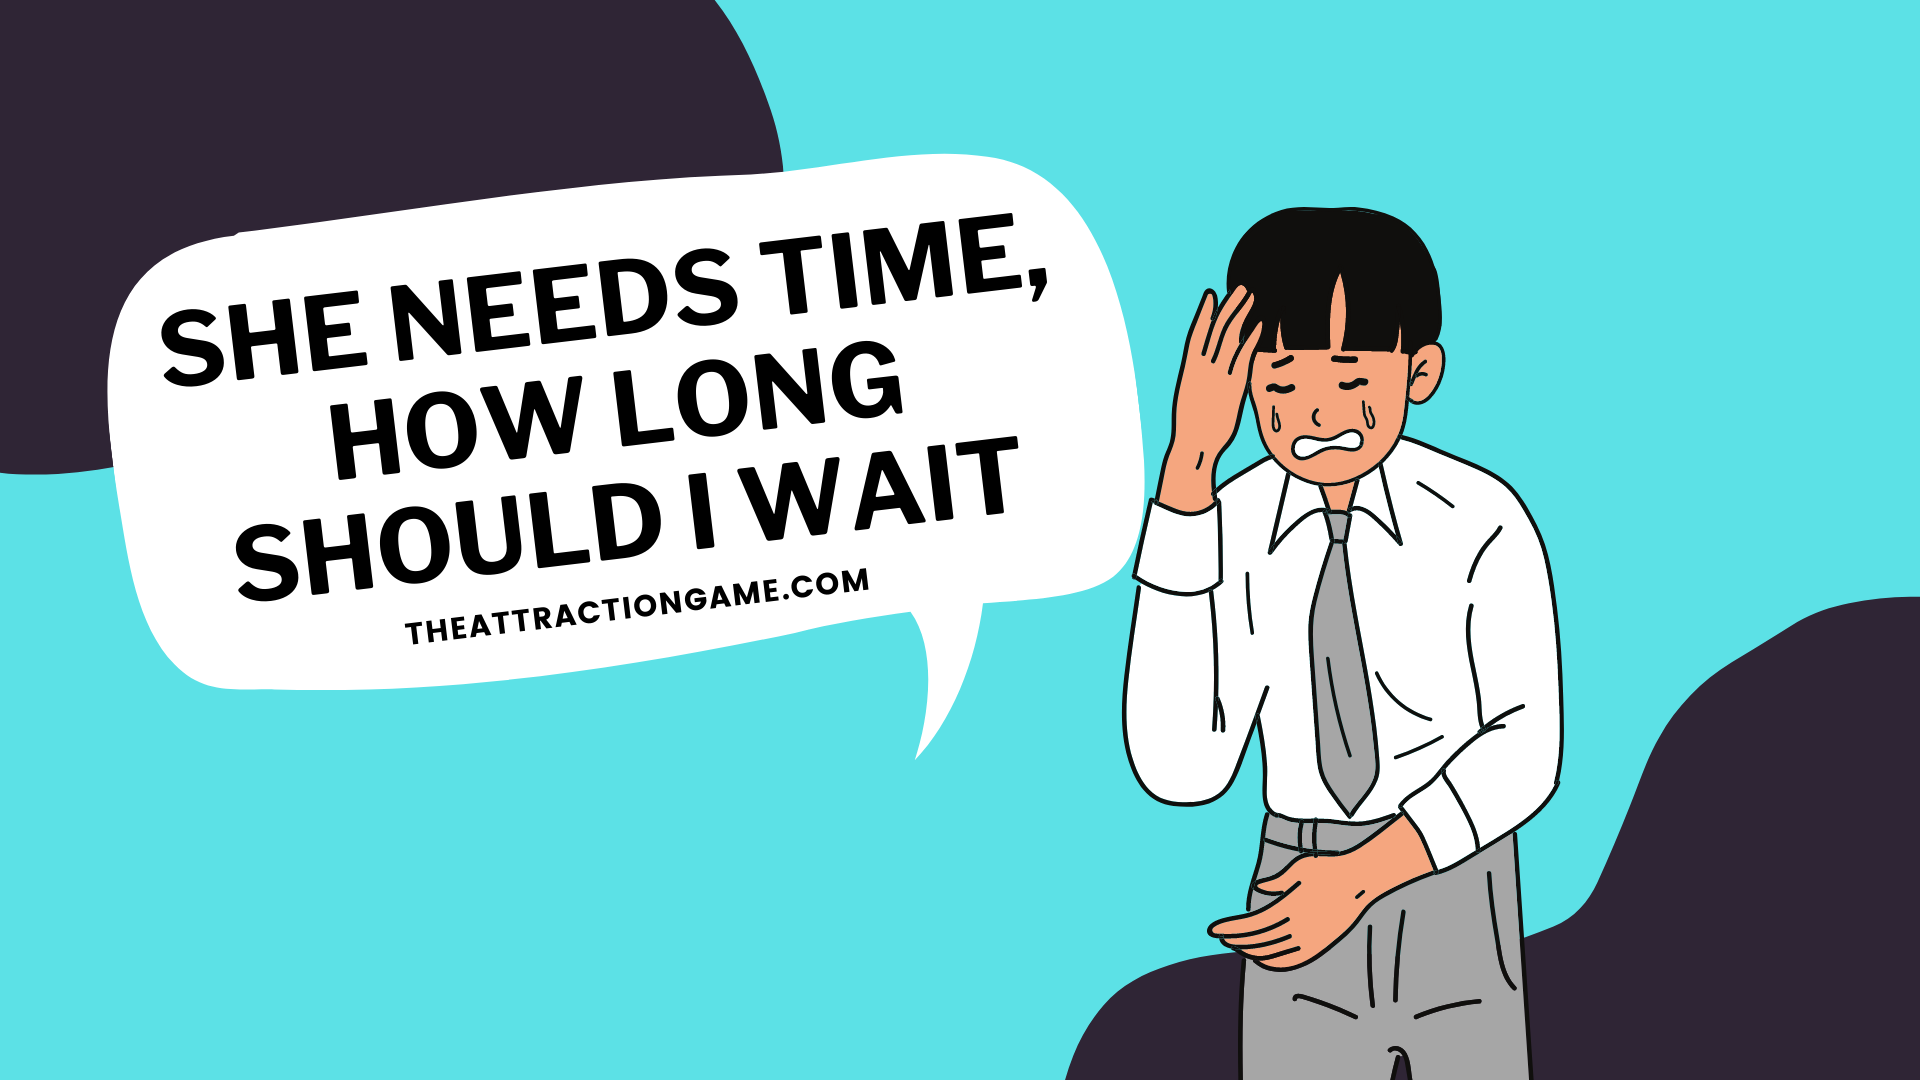 she needs time, why she needs time, how long should you wait if she needs time, she says she needs time should you wait